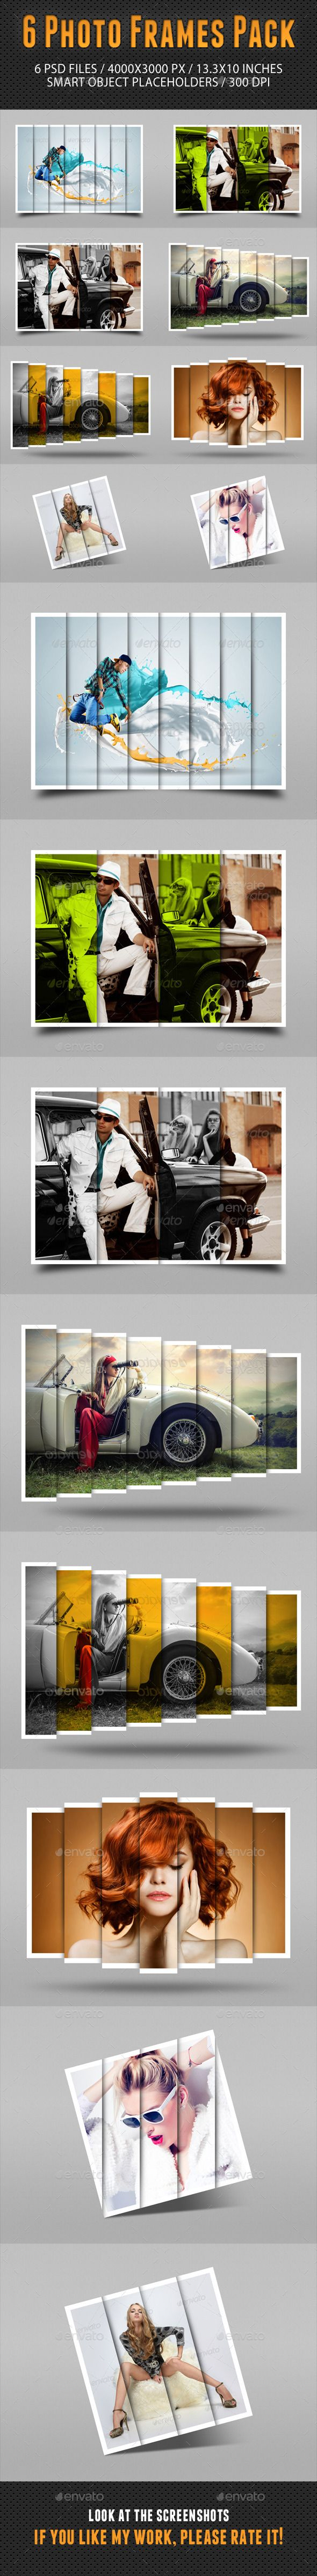 Photo Frames Pack 14 - Photo Templates Graphics